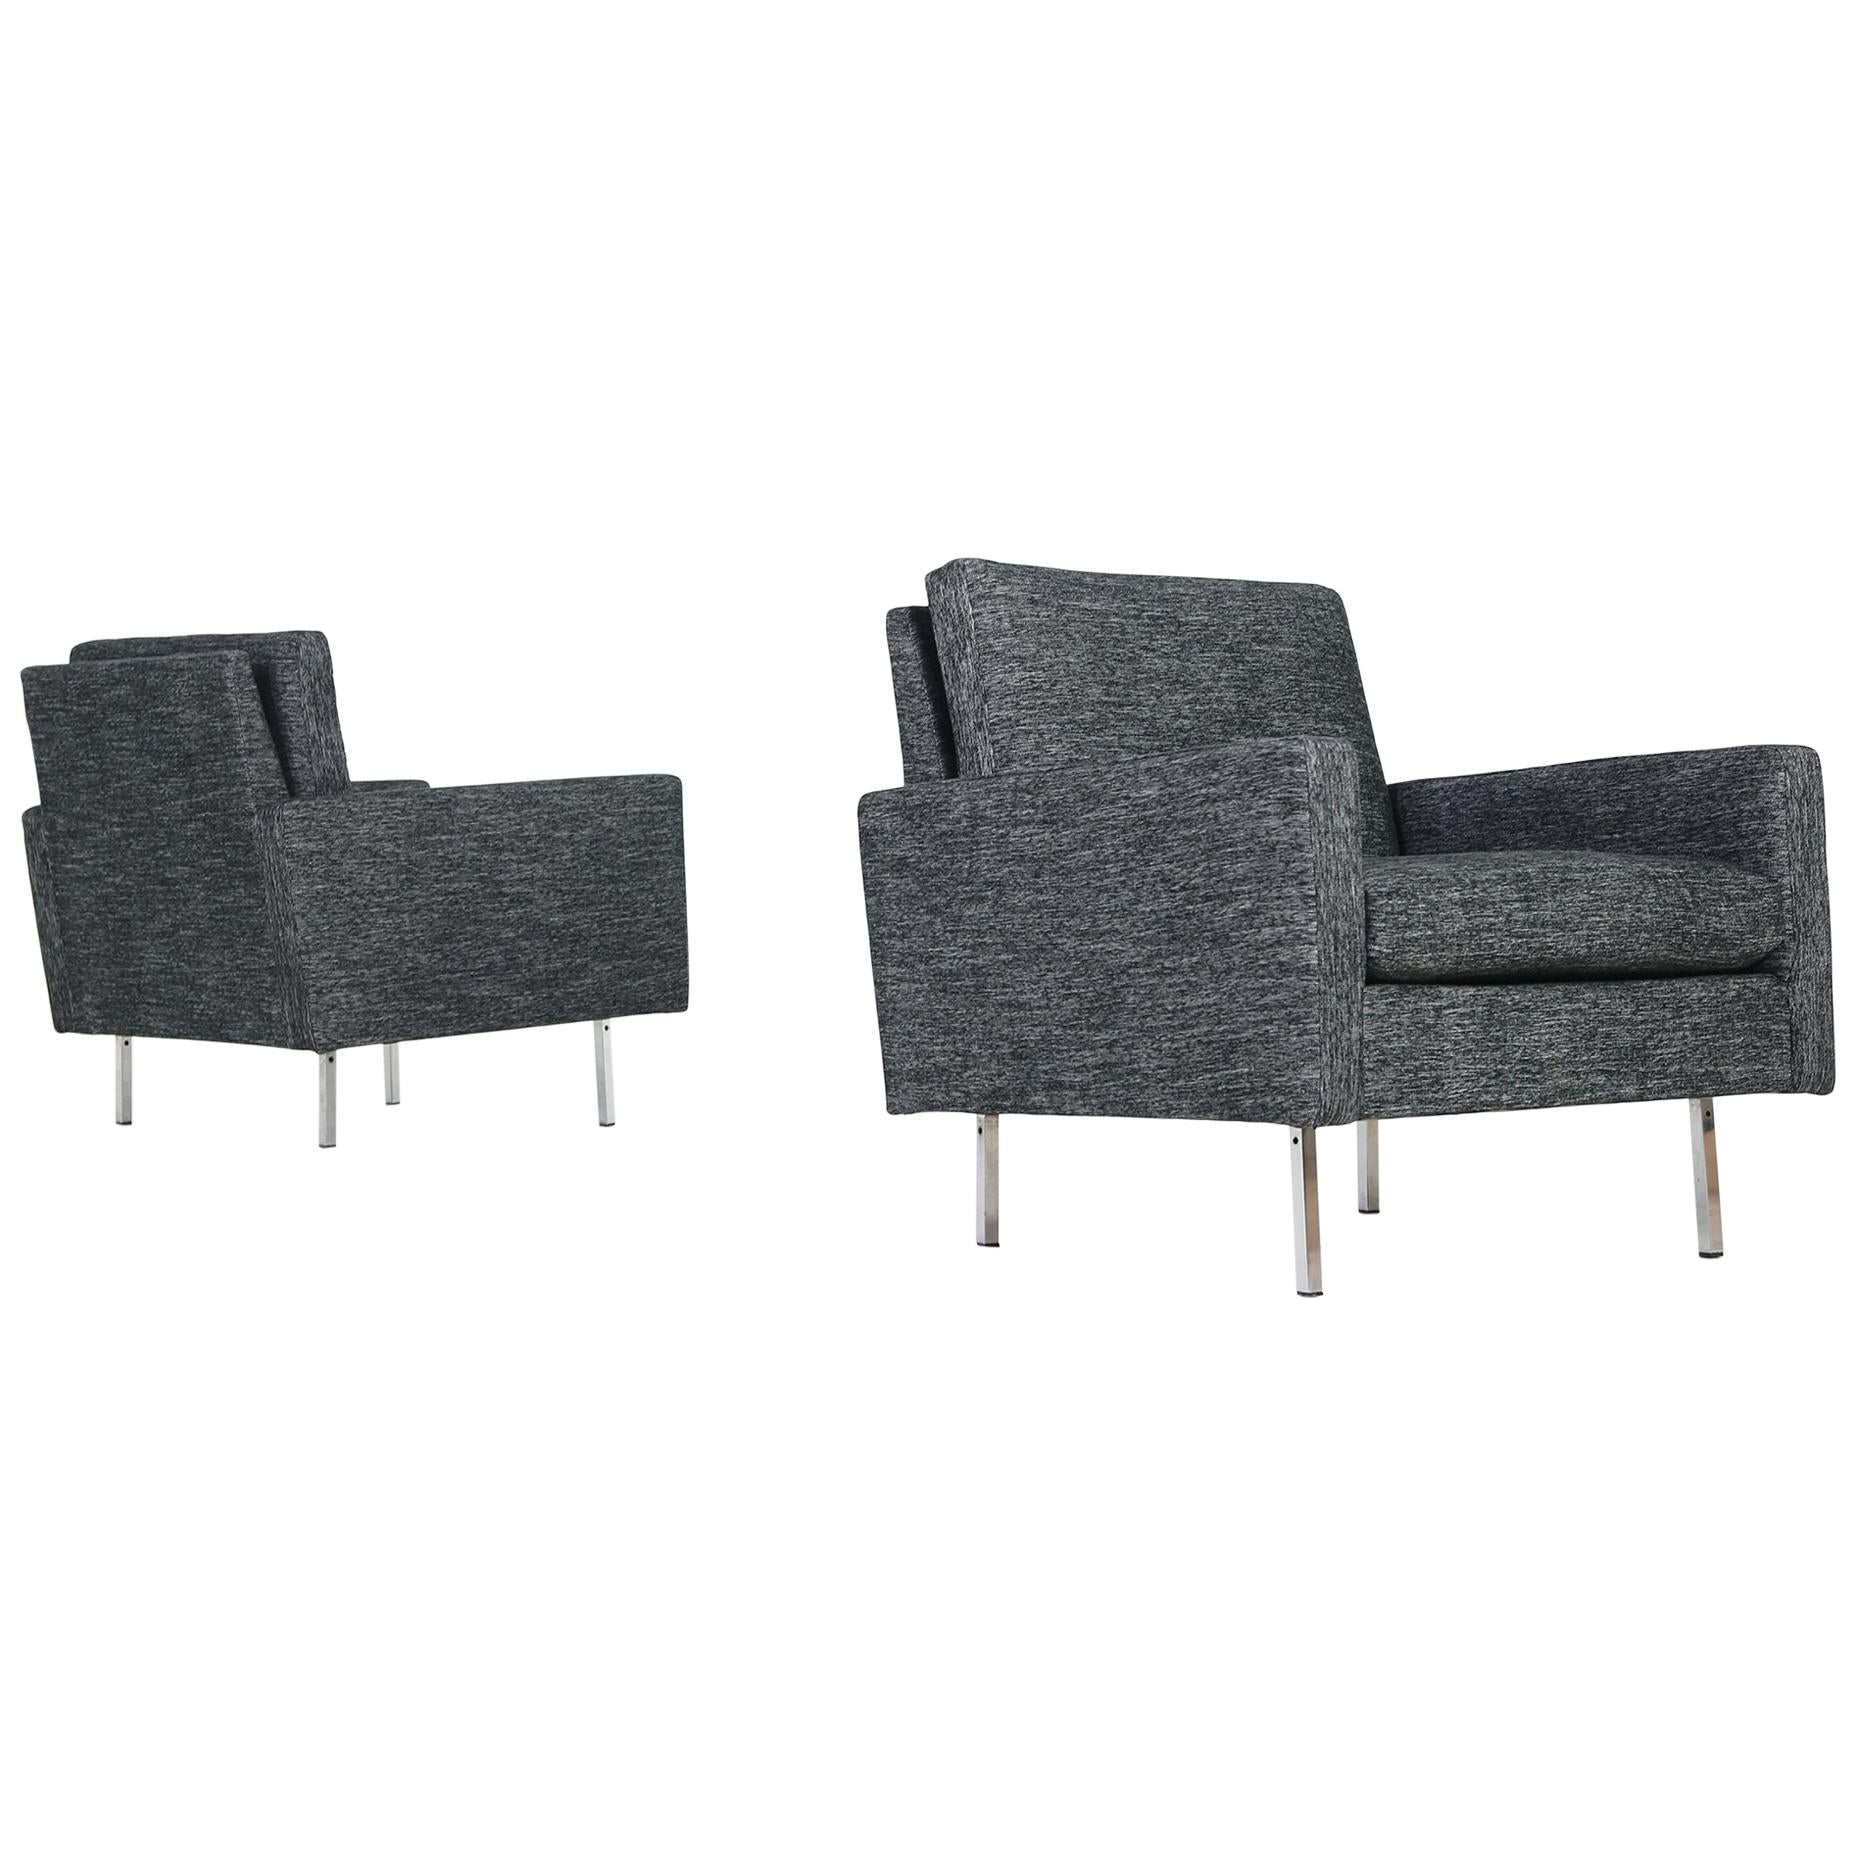 Pair of 1960s Florence Knoll Lounge Chairs Model 25 BC Knoll International '2'